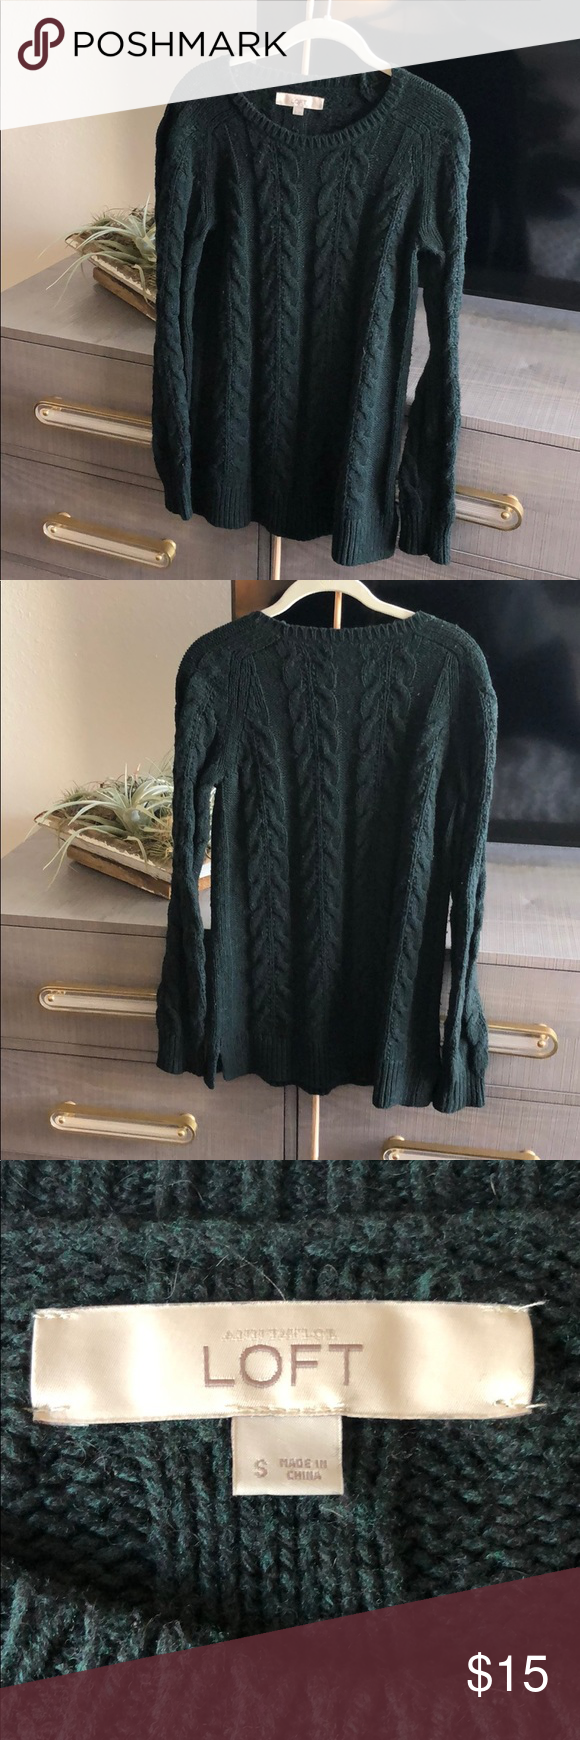 c8bf02e3df5a6e Dark green knitted sweater Beautiful cable knit sweater LOFT Sweaters